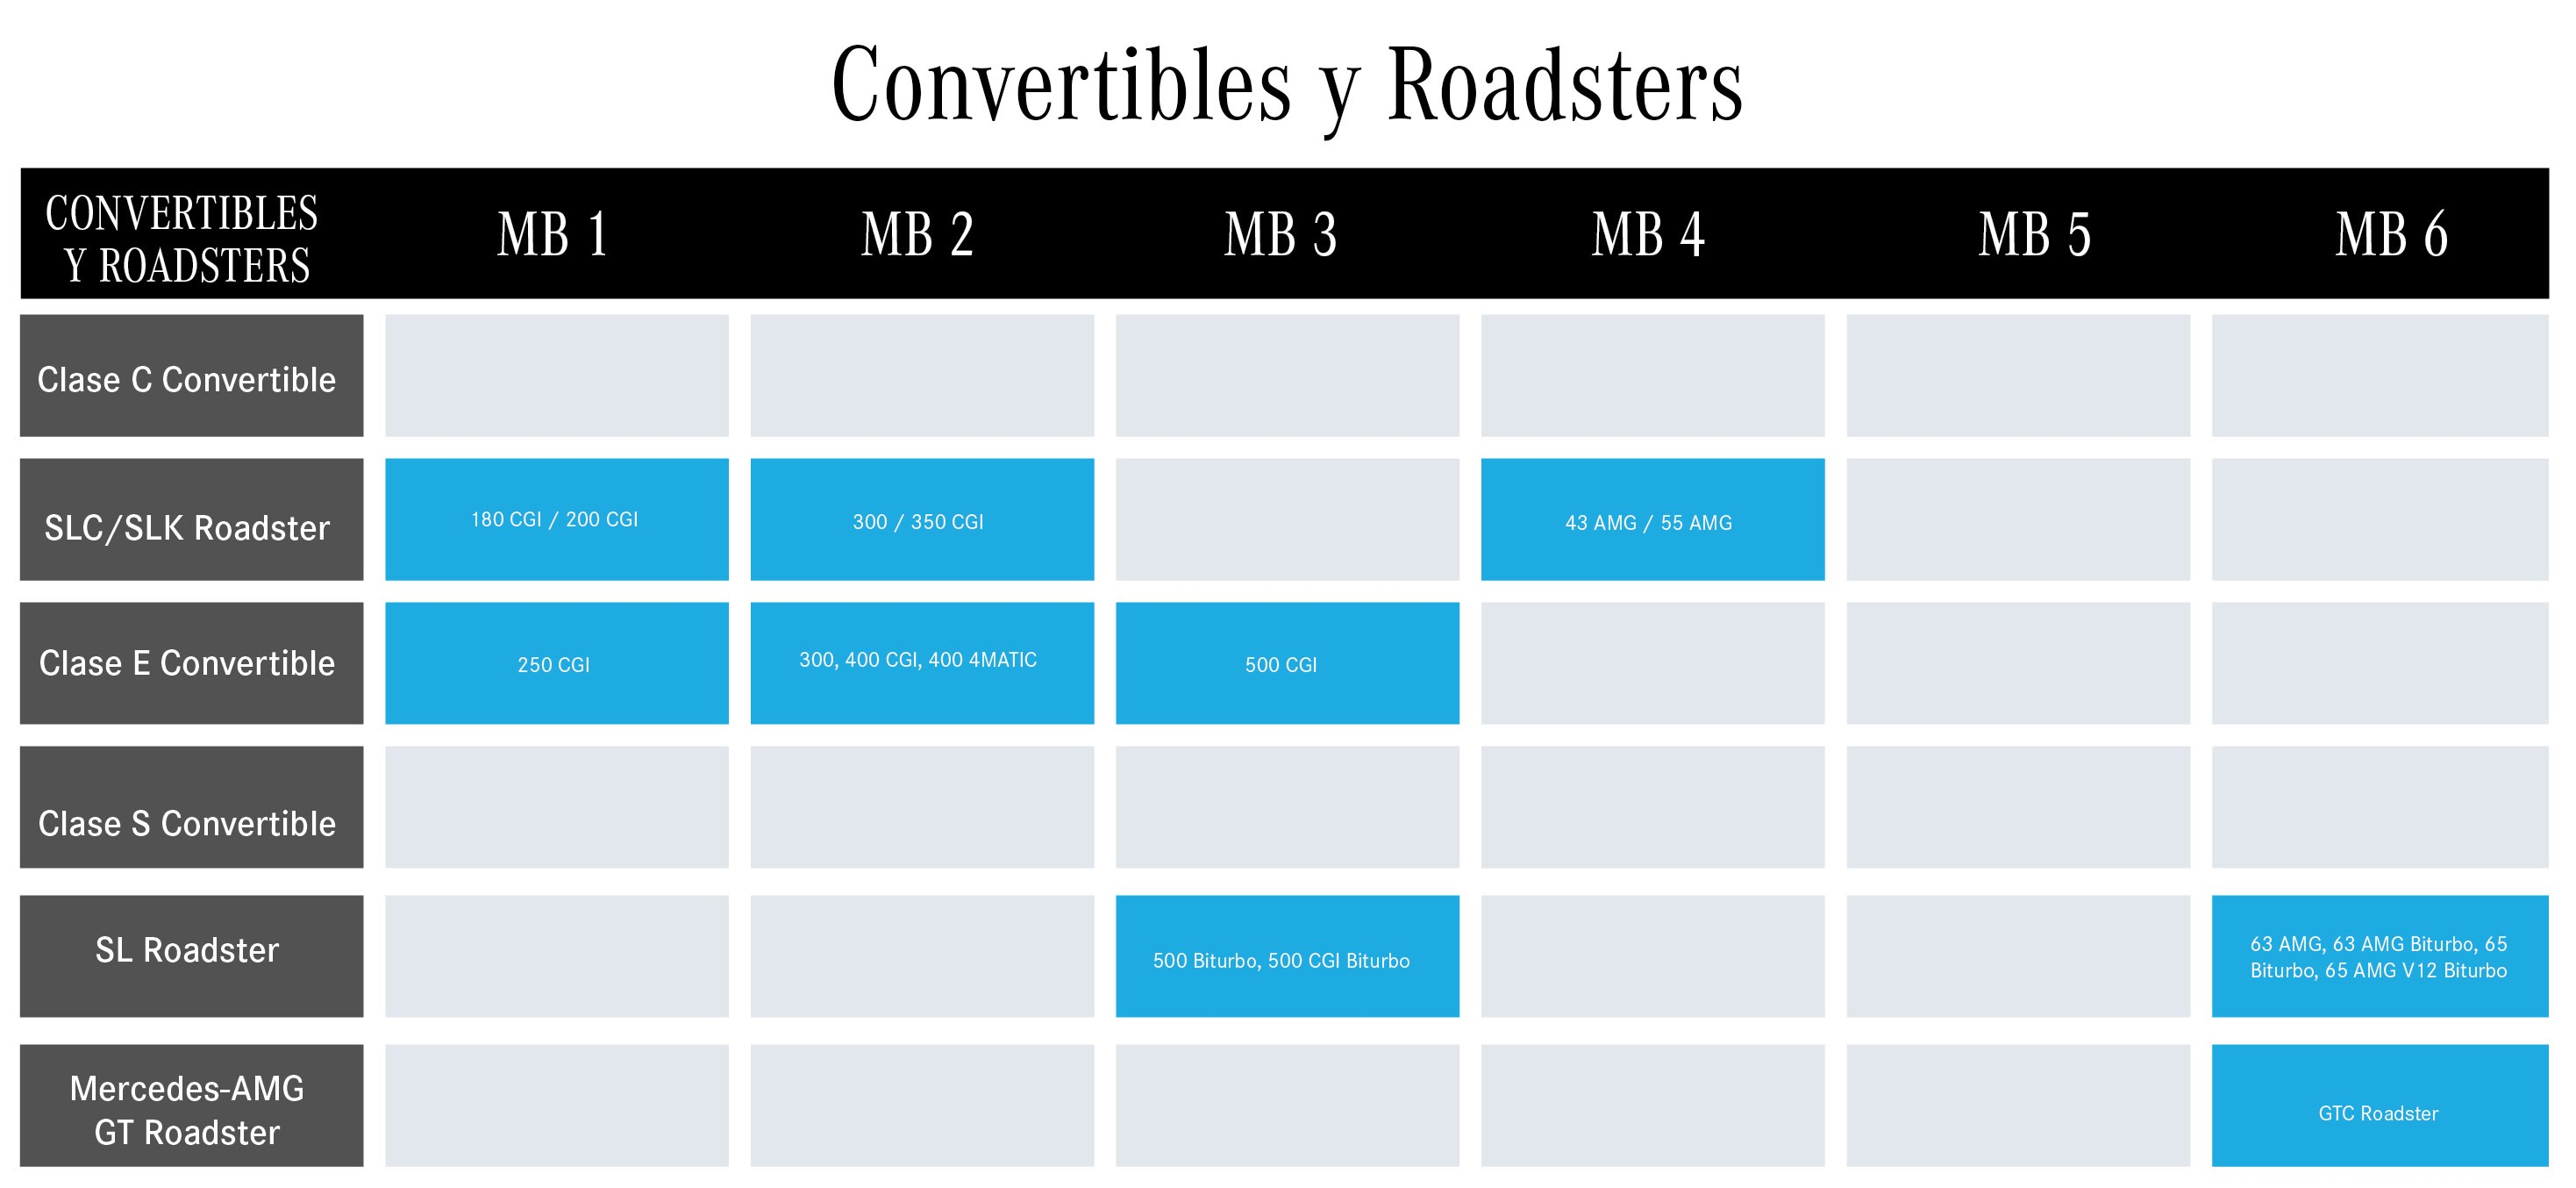 CONVERTIBLES Y ROADSTERS